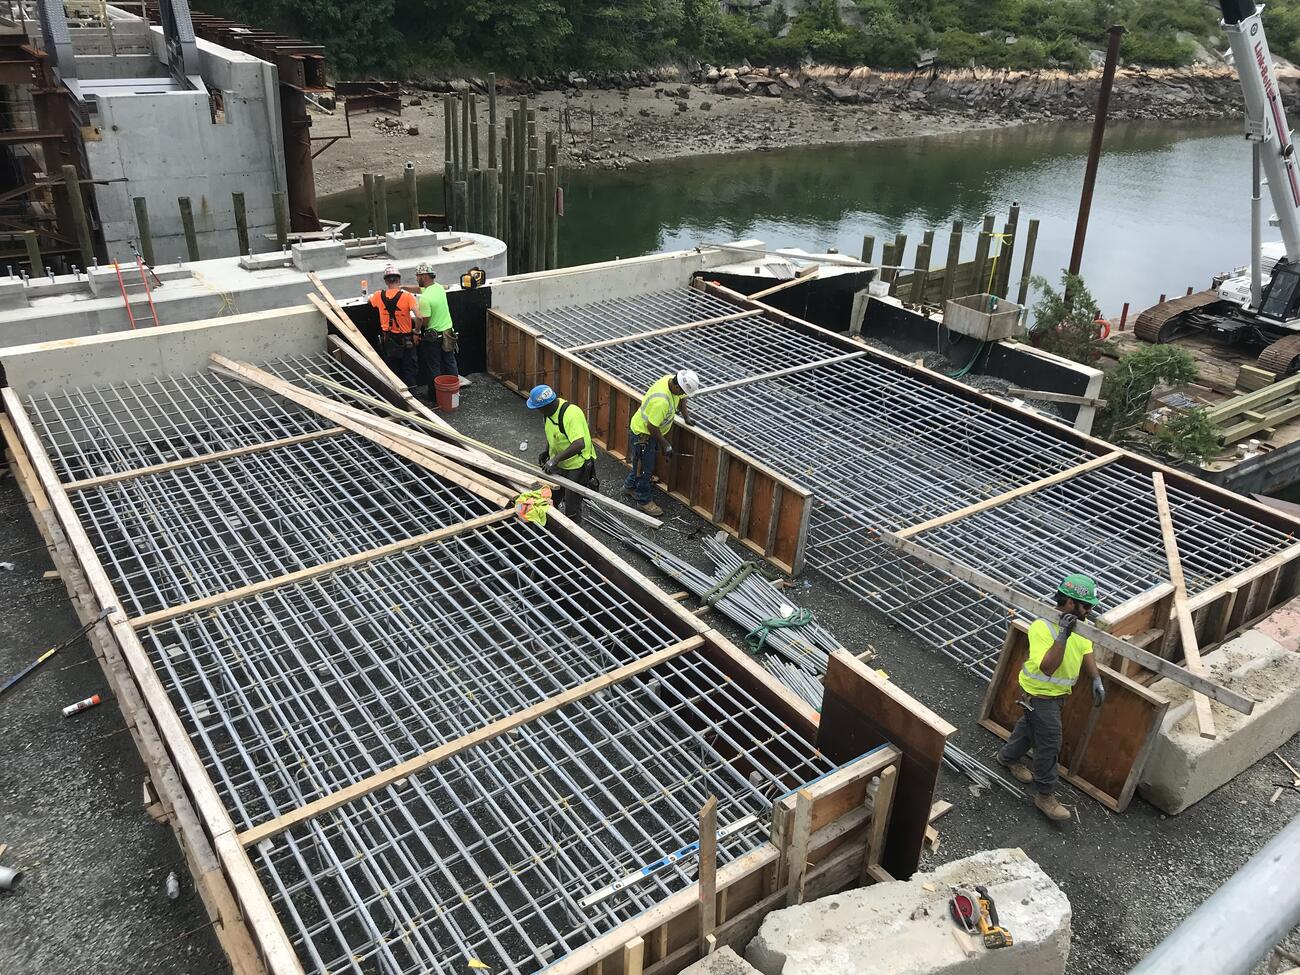 Five workers build large wooden forms crisscrossed with metal reinforcing bars before the forms are filled with concrete to create the approach slabs leading to the bridge. Wooden piers and the waterway are visible in the background.